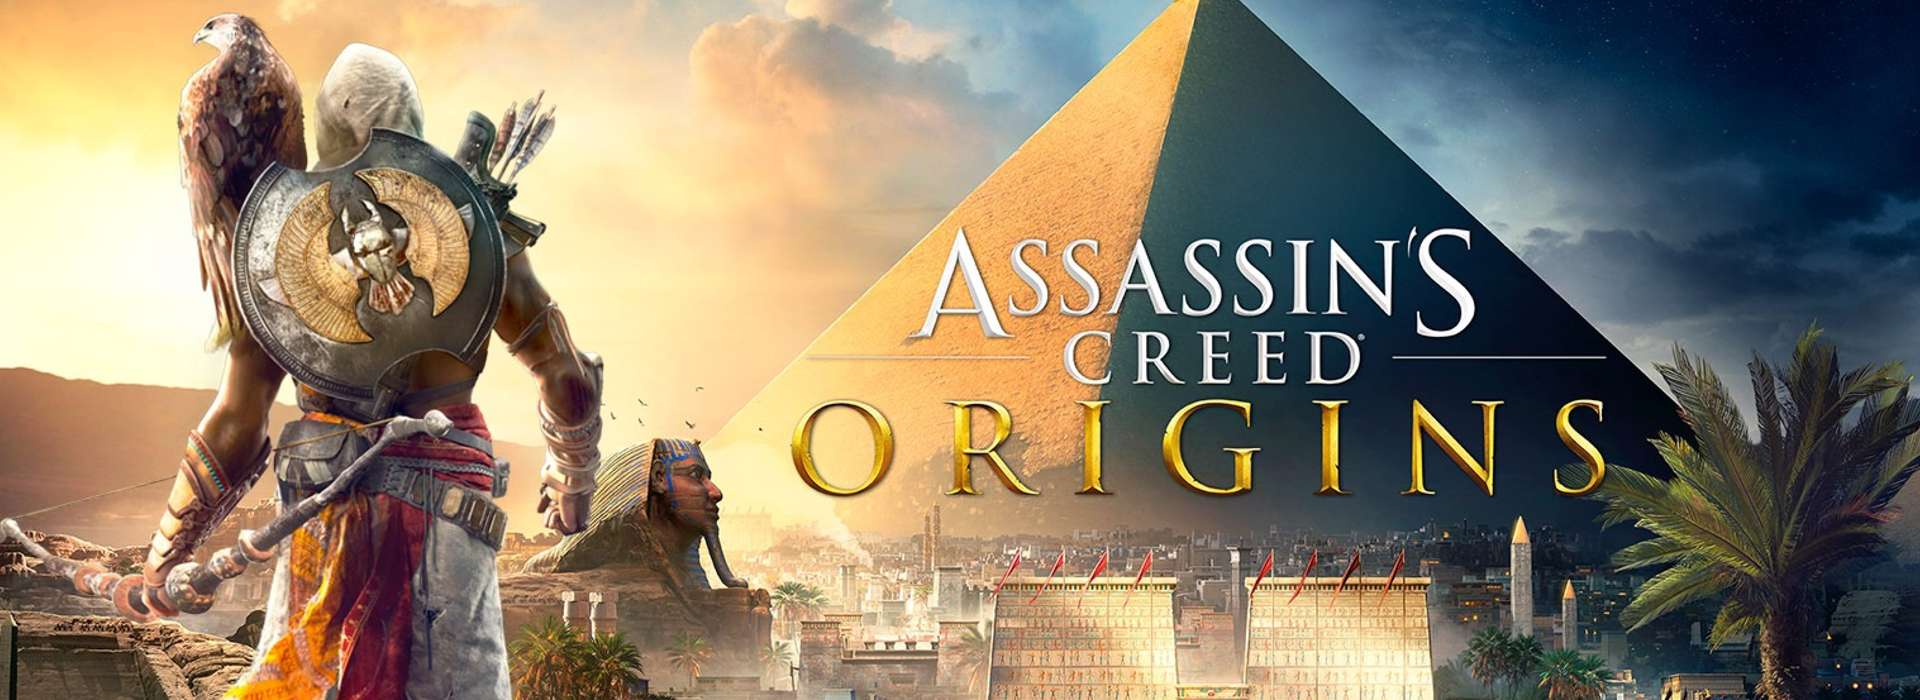 Assassin's Creed Origins Pre-order